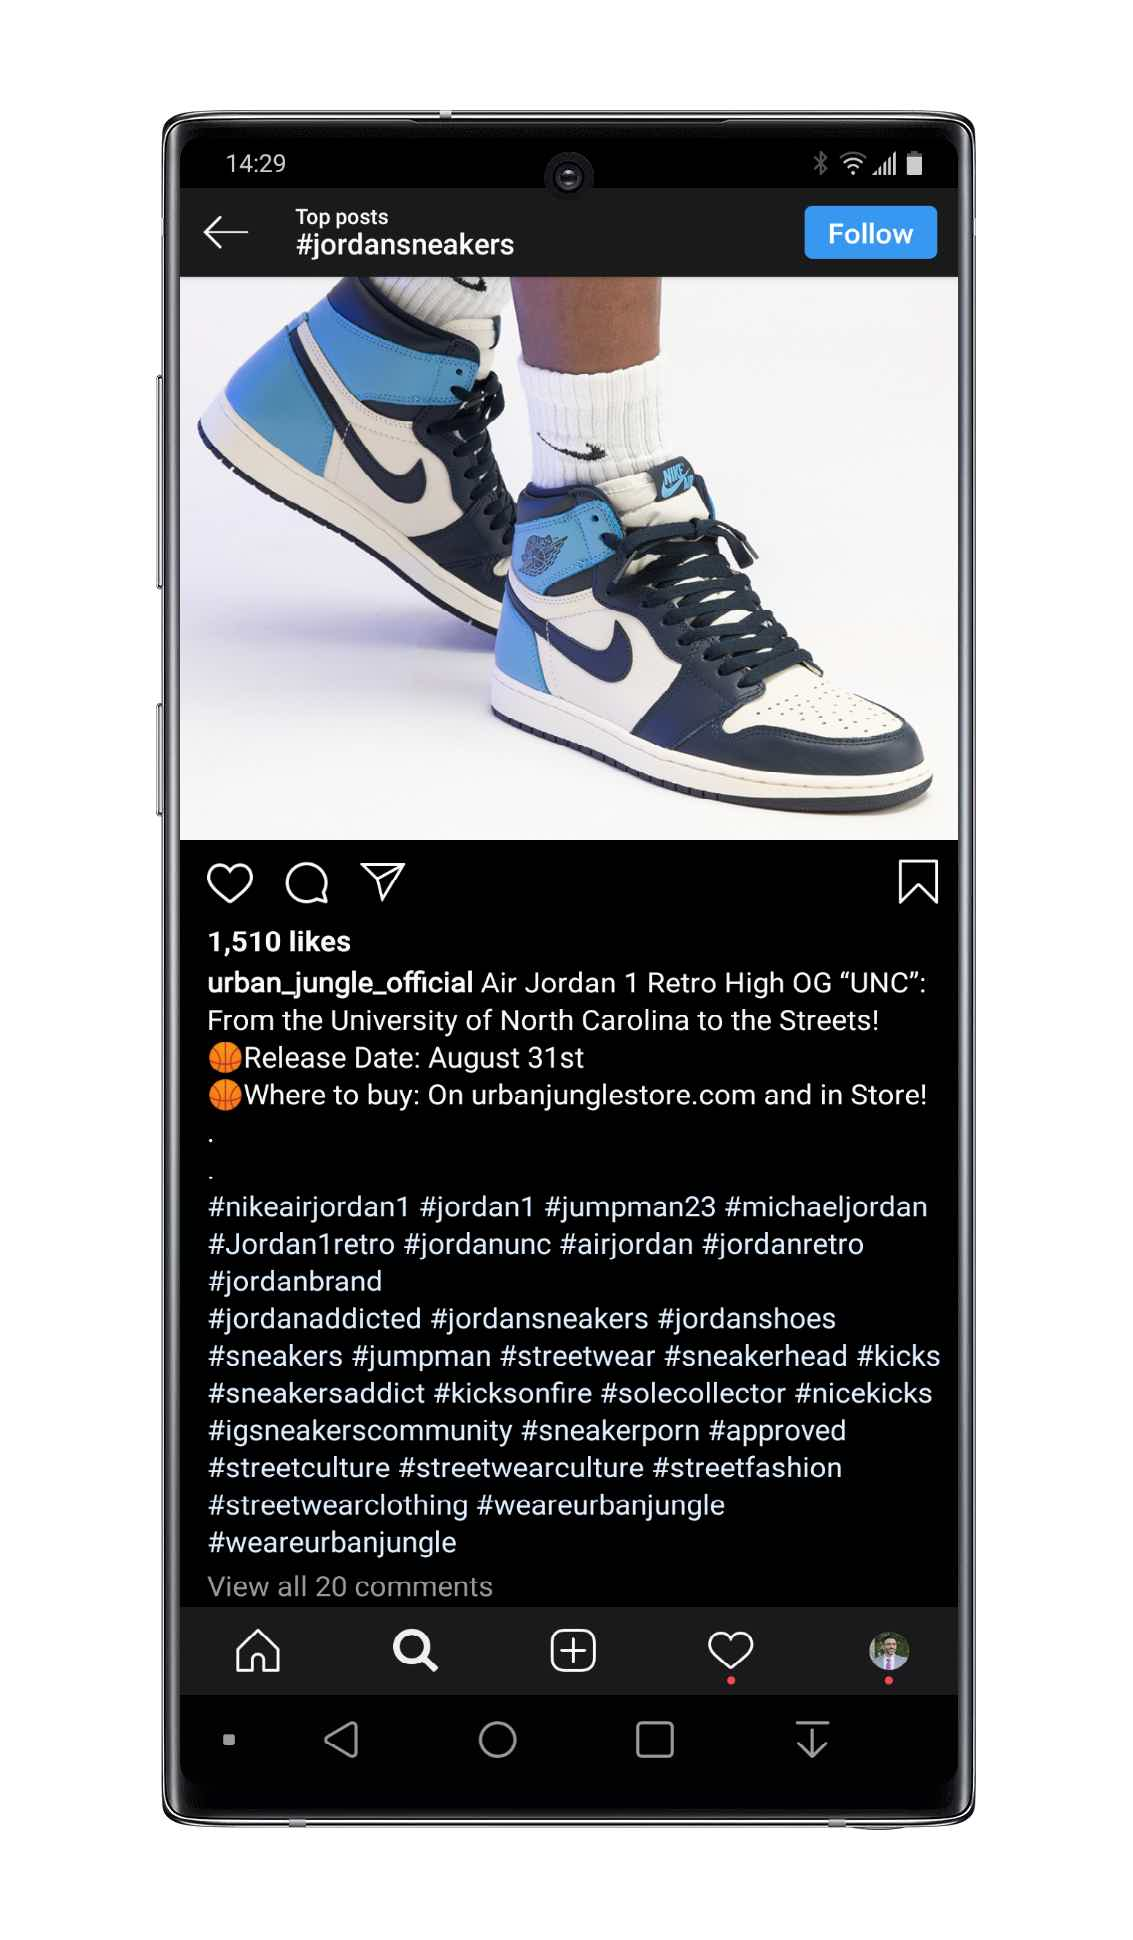 30 hashtags max limit on Instagram